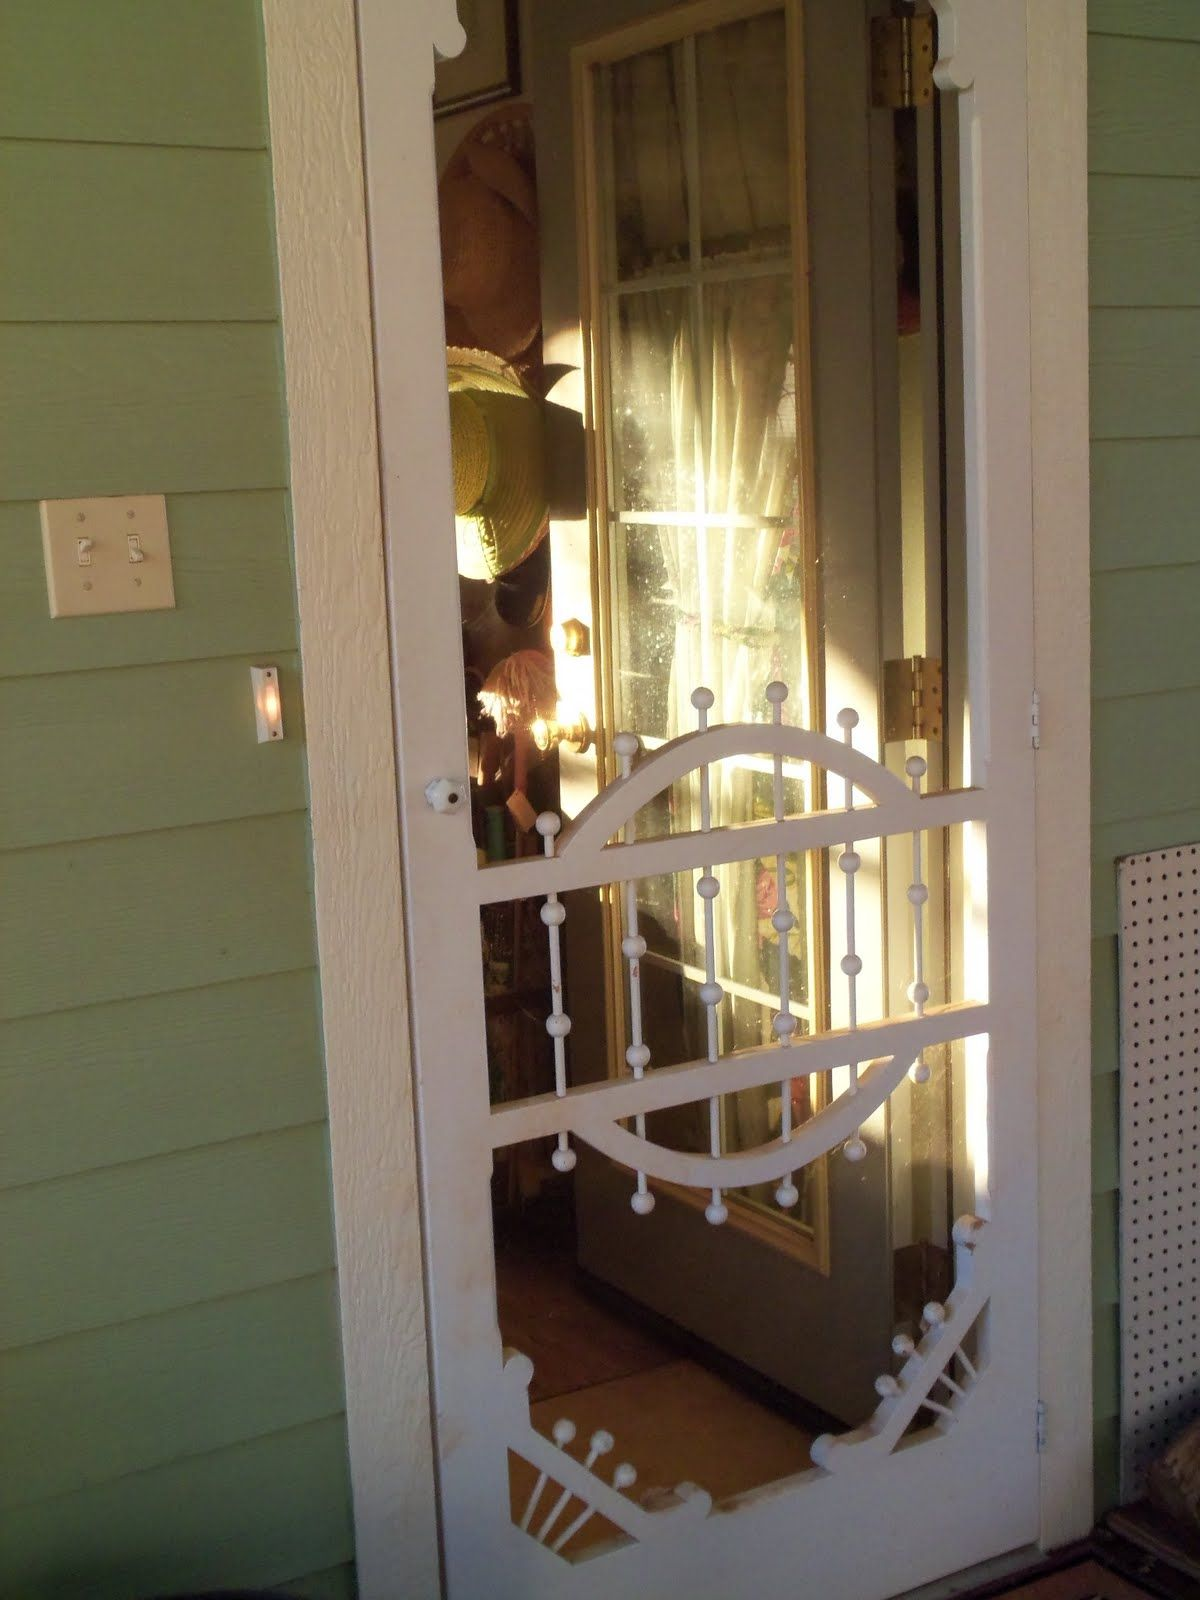 Vintage Screen Doors Like The Way They Look Like They Are Really